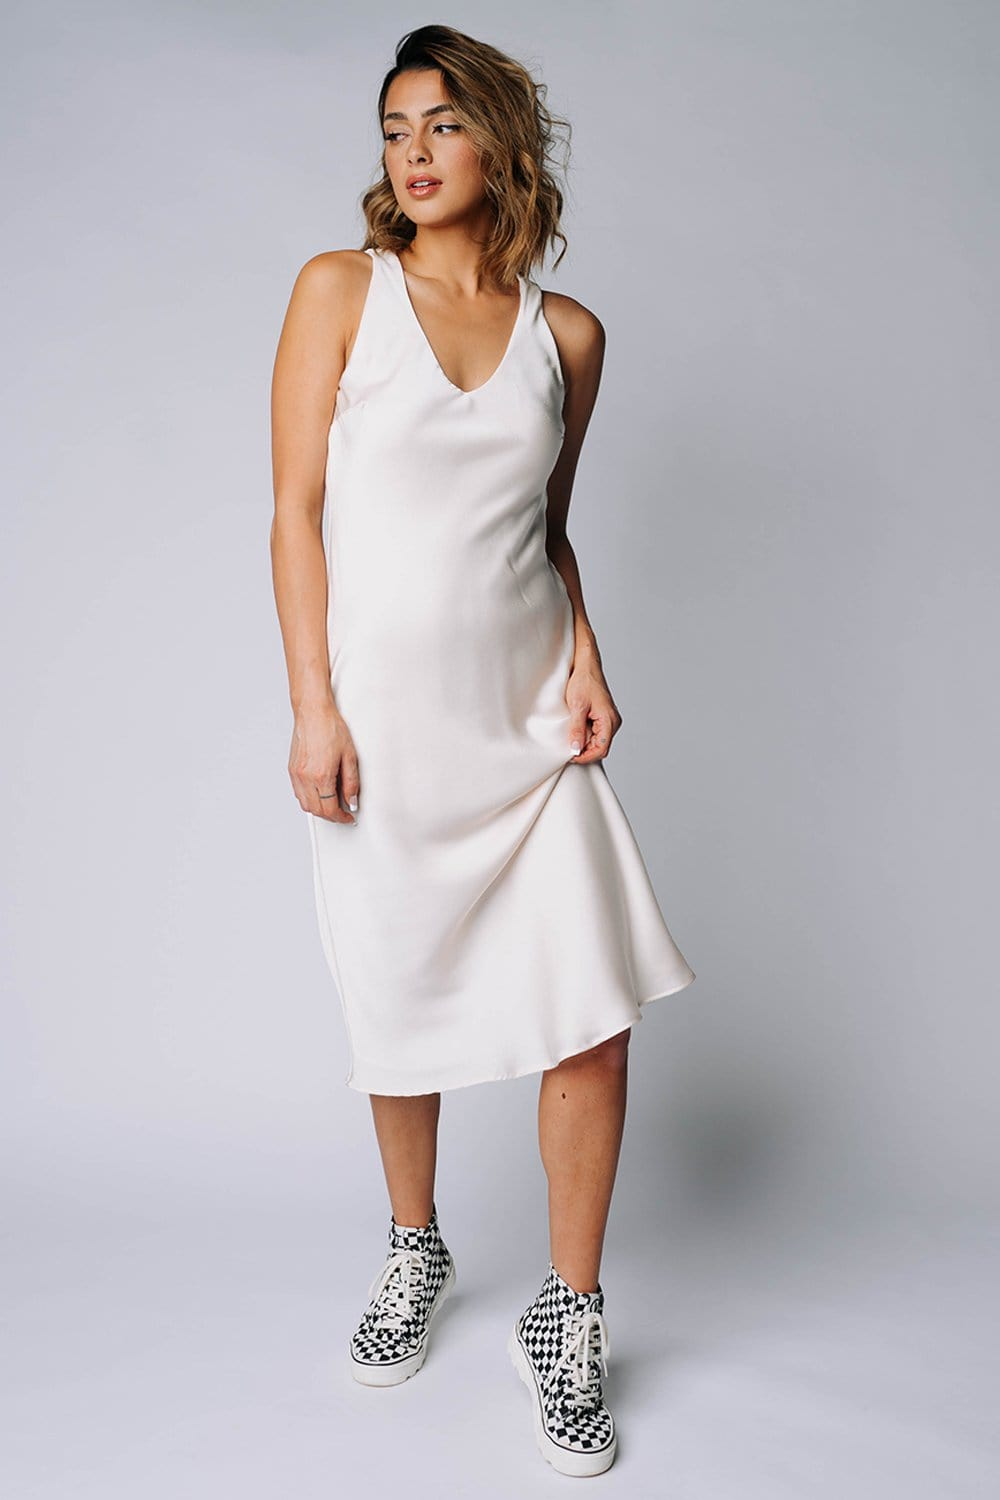 The Andie Dress in Cream